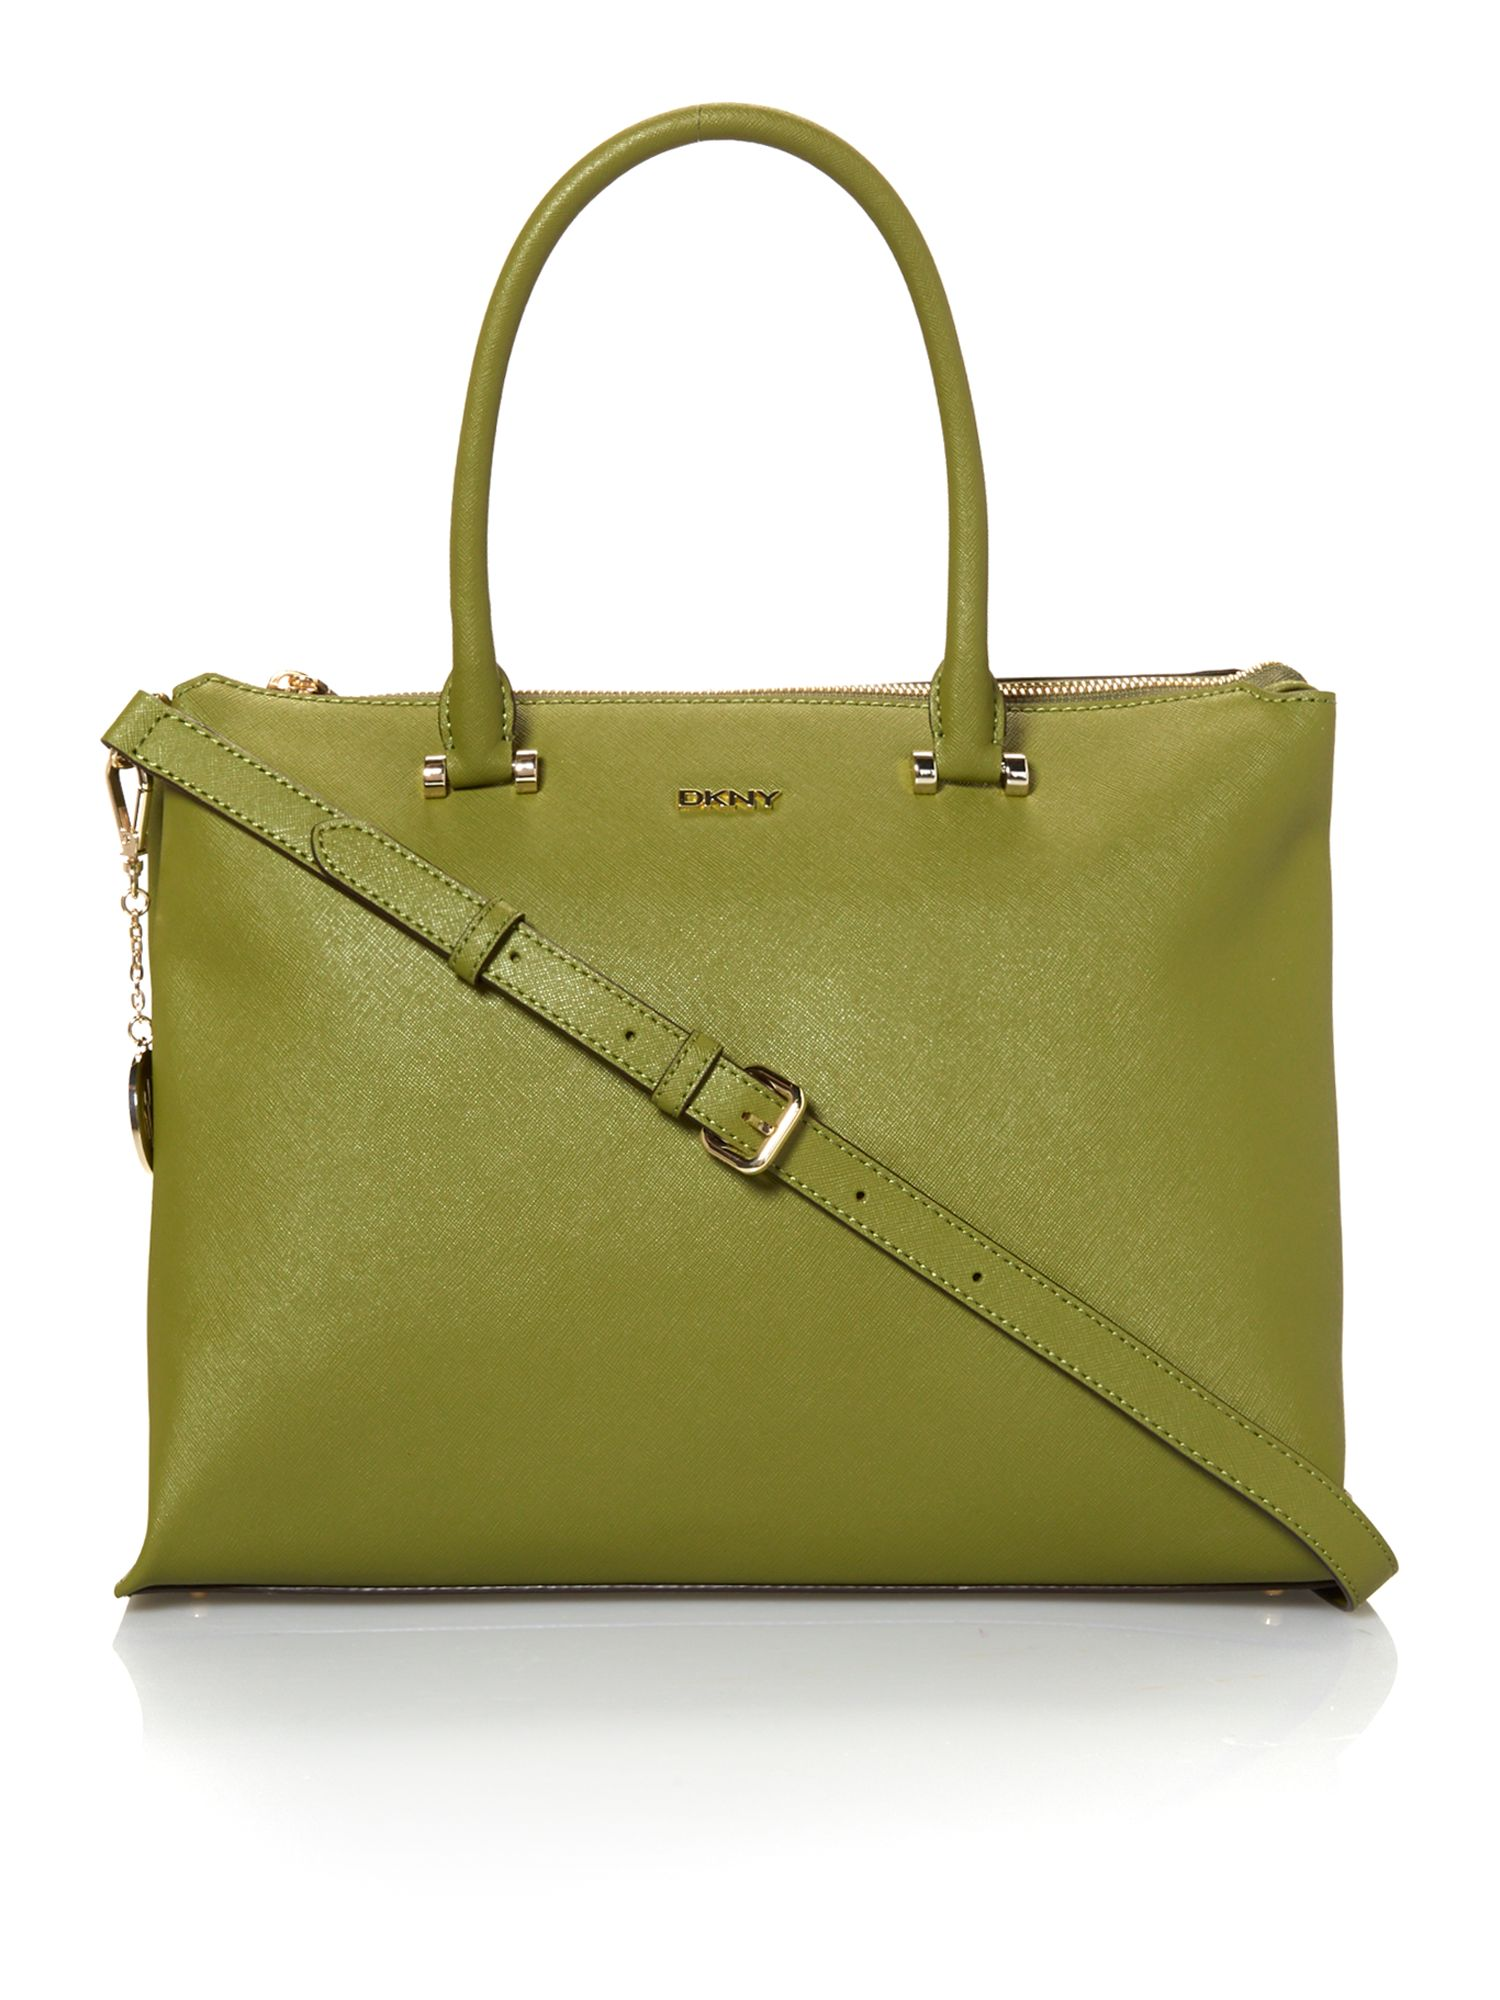 Saffiano green large tote bag